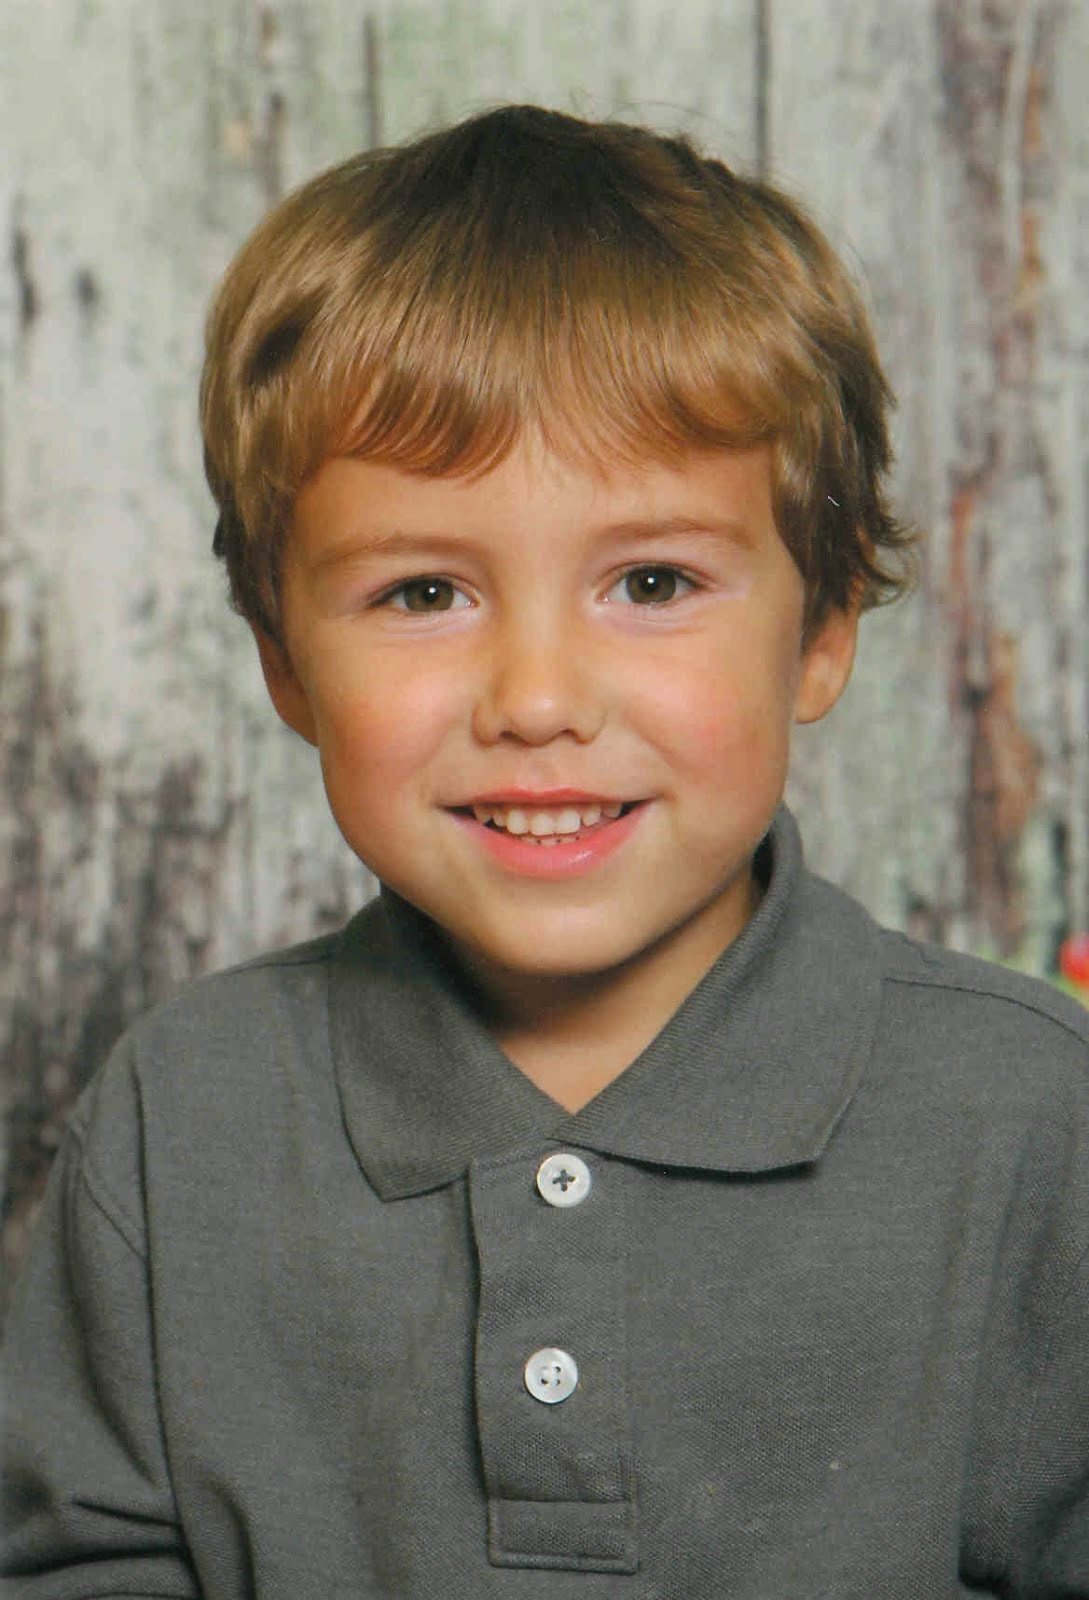 Connor, 5 Years Old